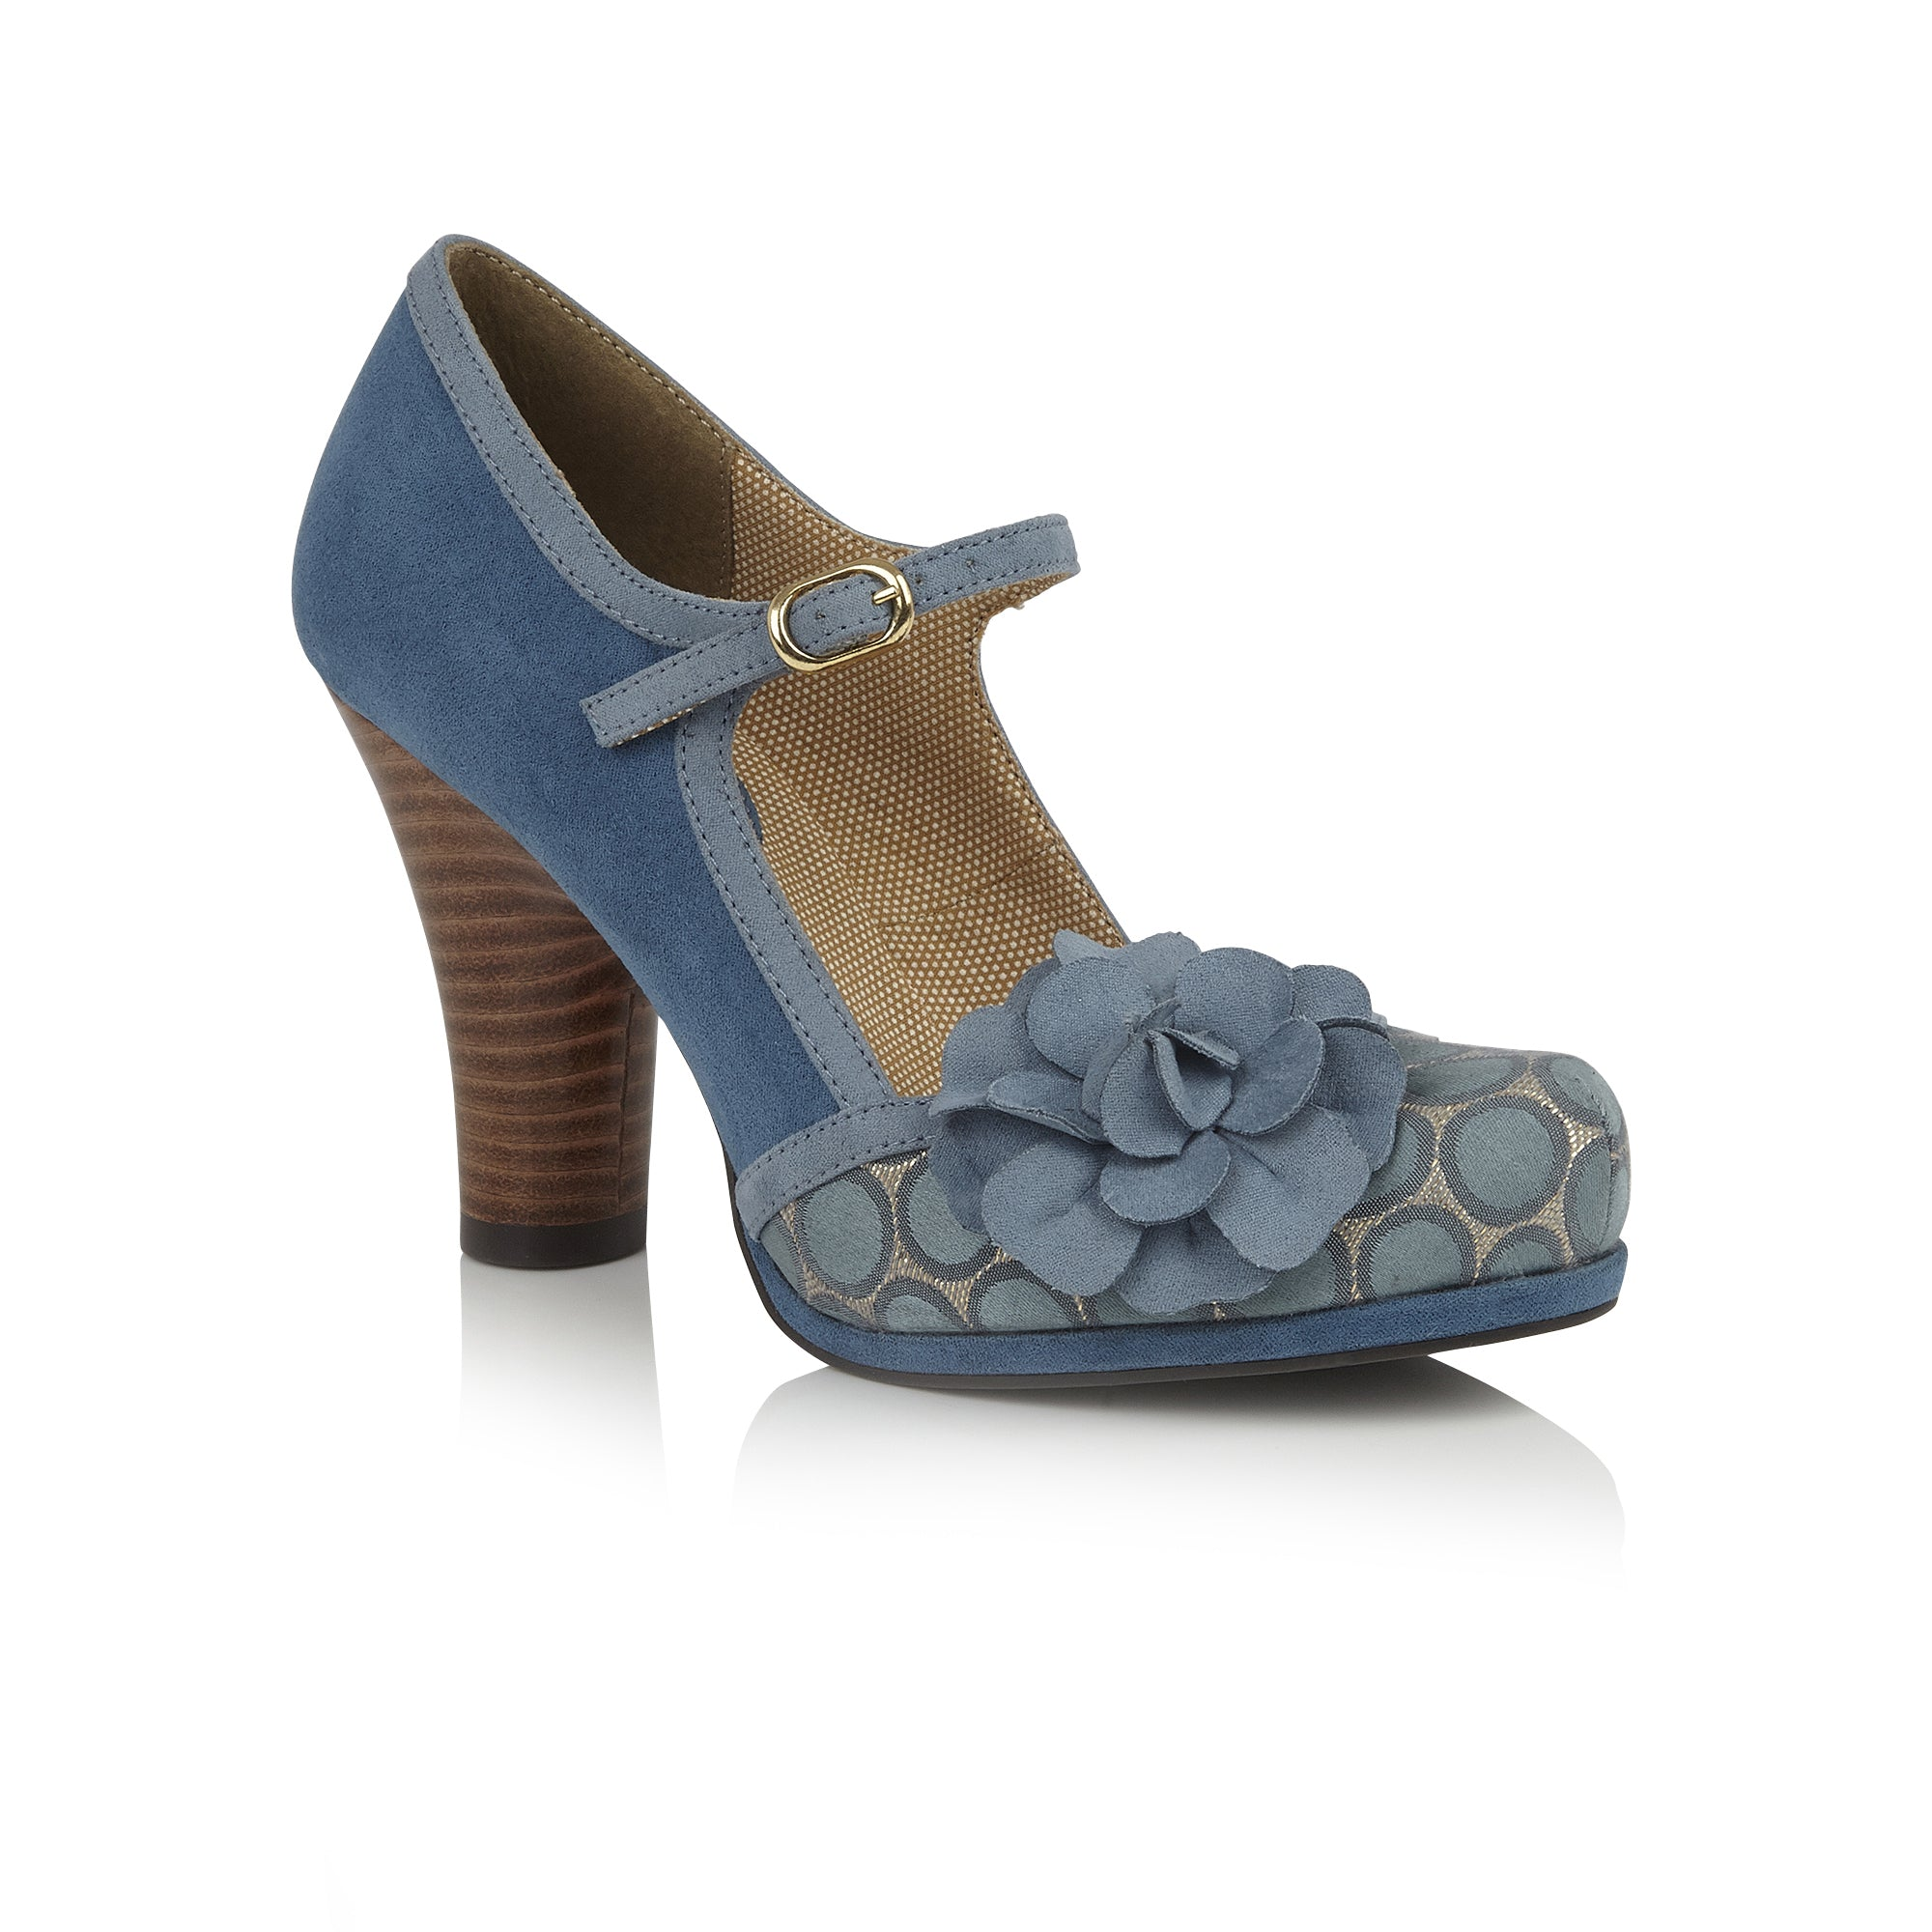 440bb1bf Ruby Shoo Hannah Teal Blue Polka Dot Corsage Court Shoes